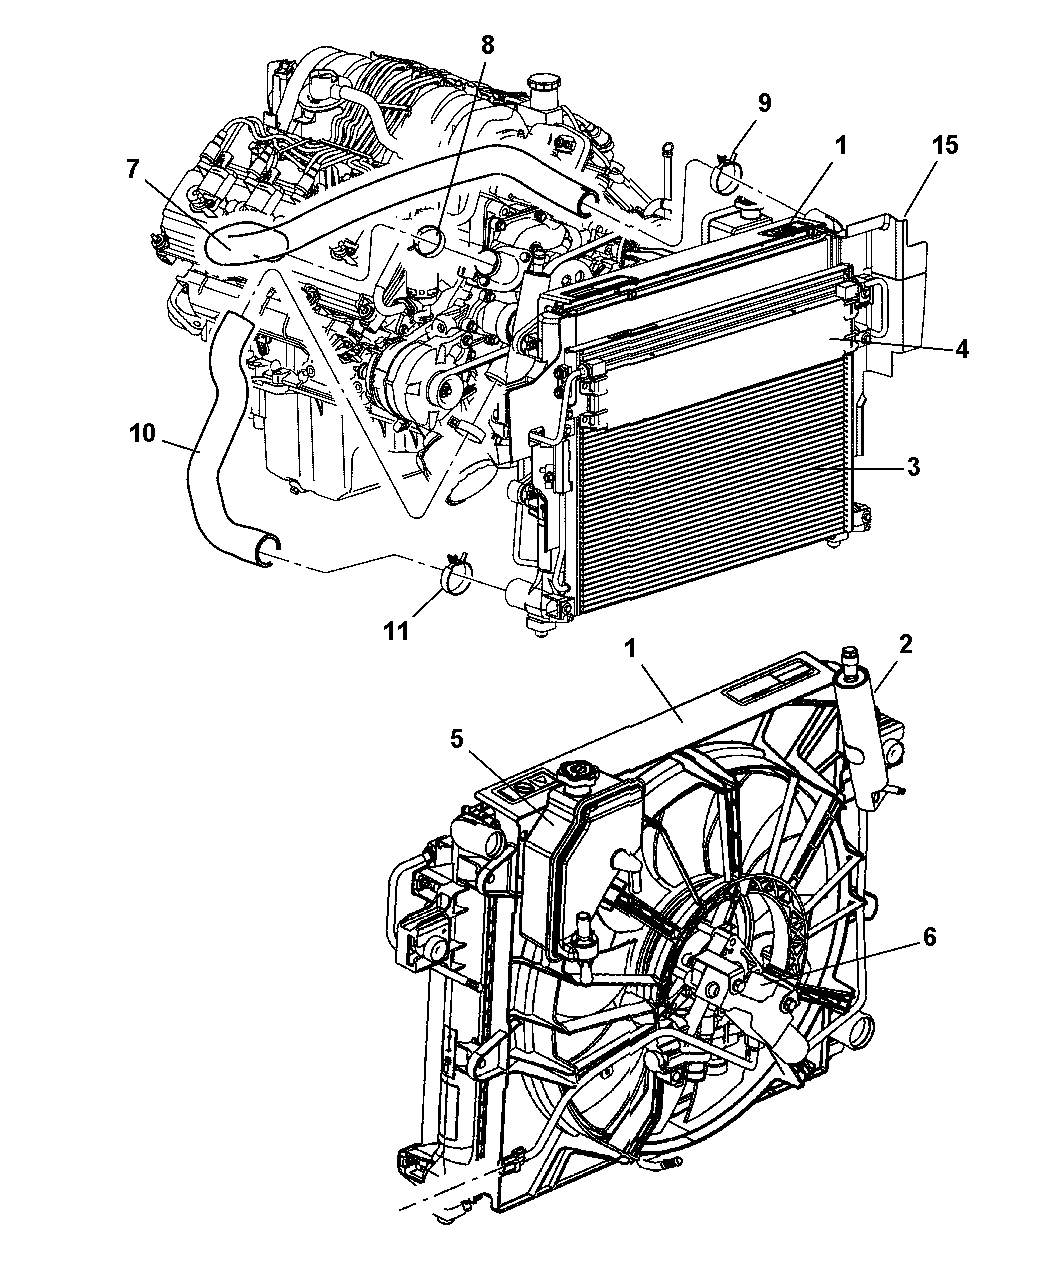 55116868Aa - Genuine Mopar Hose-Radiator Outlet intended for 2005 Jeep Grand Cherokee Parts Diagram